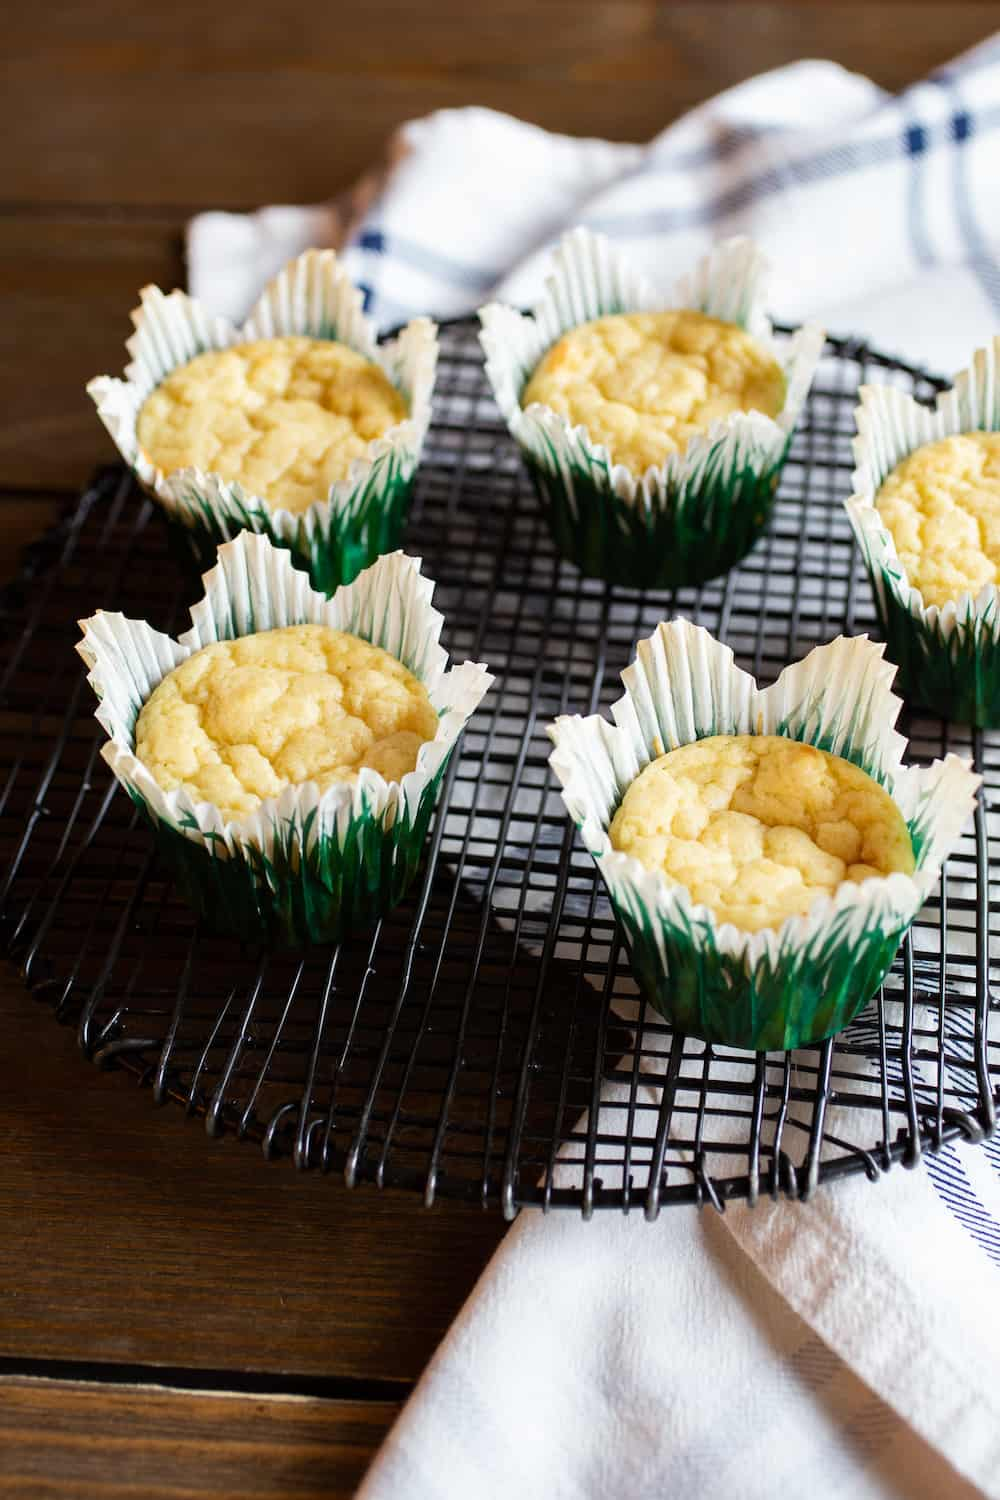 Buttermilk Muffins from At Home on the Range